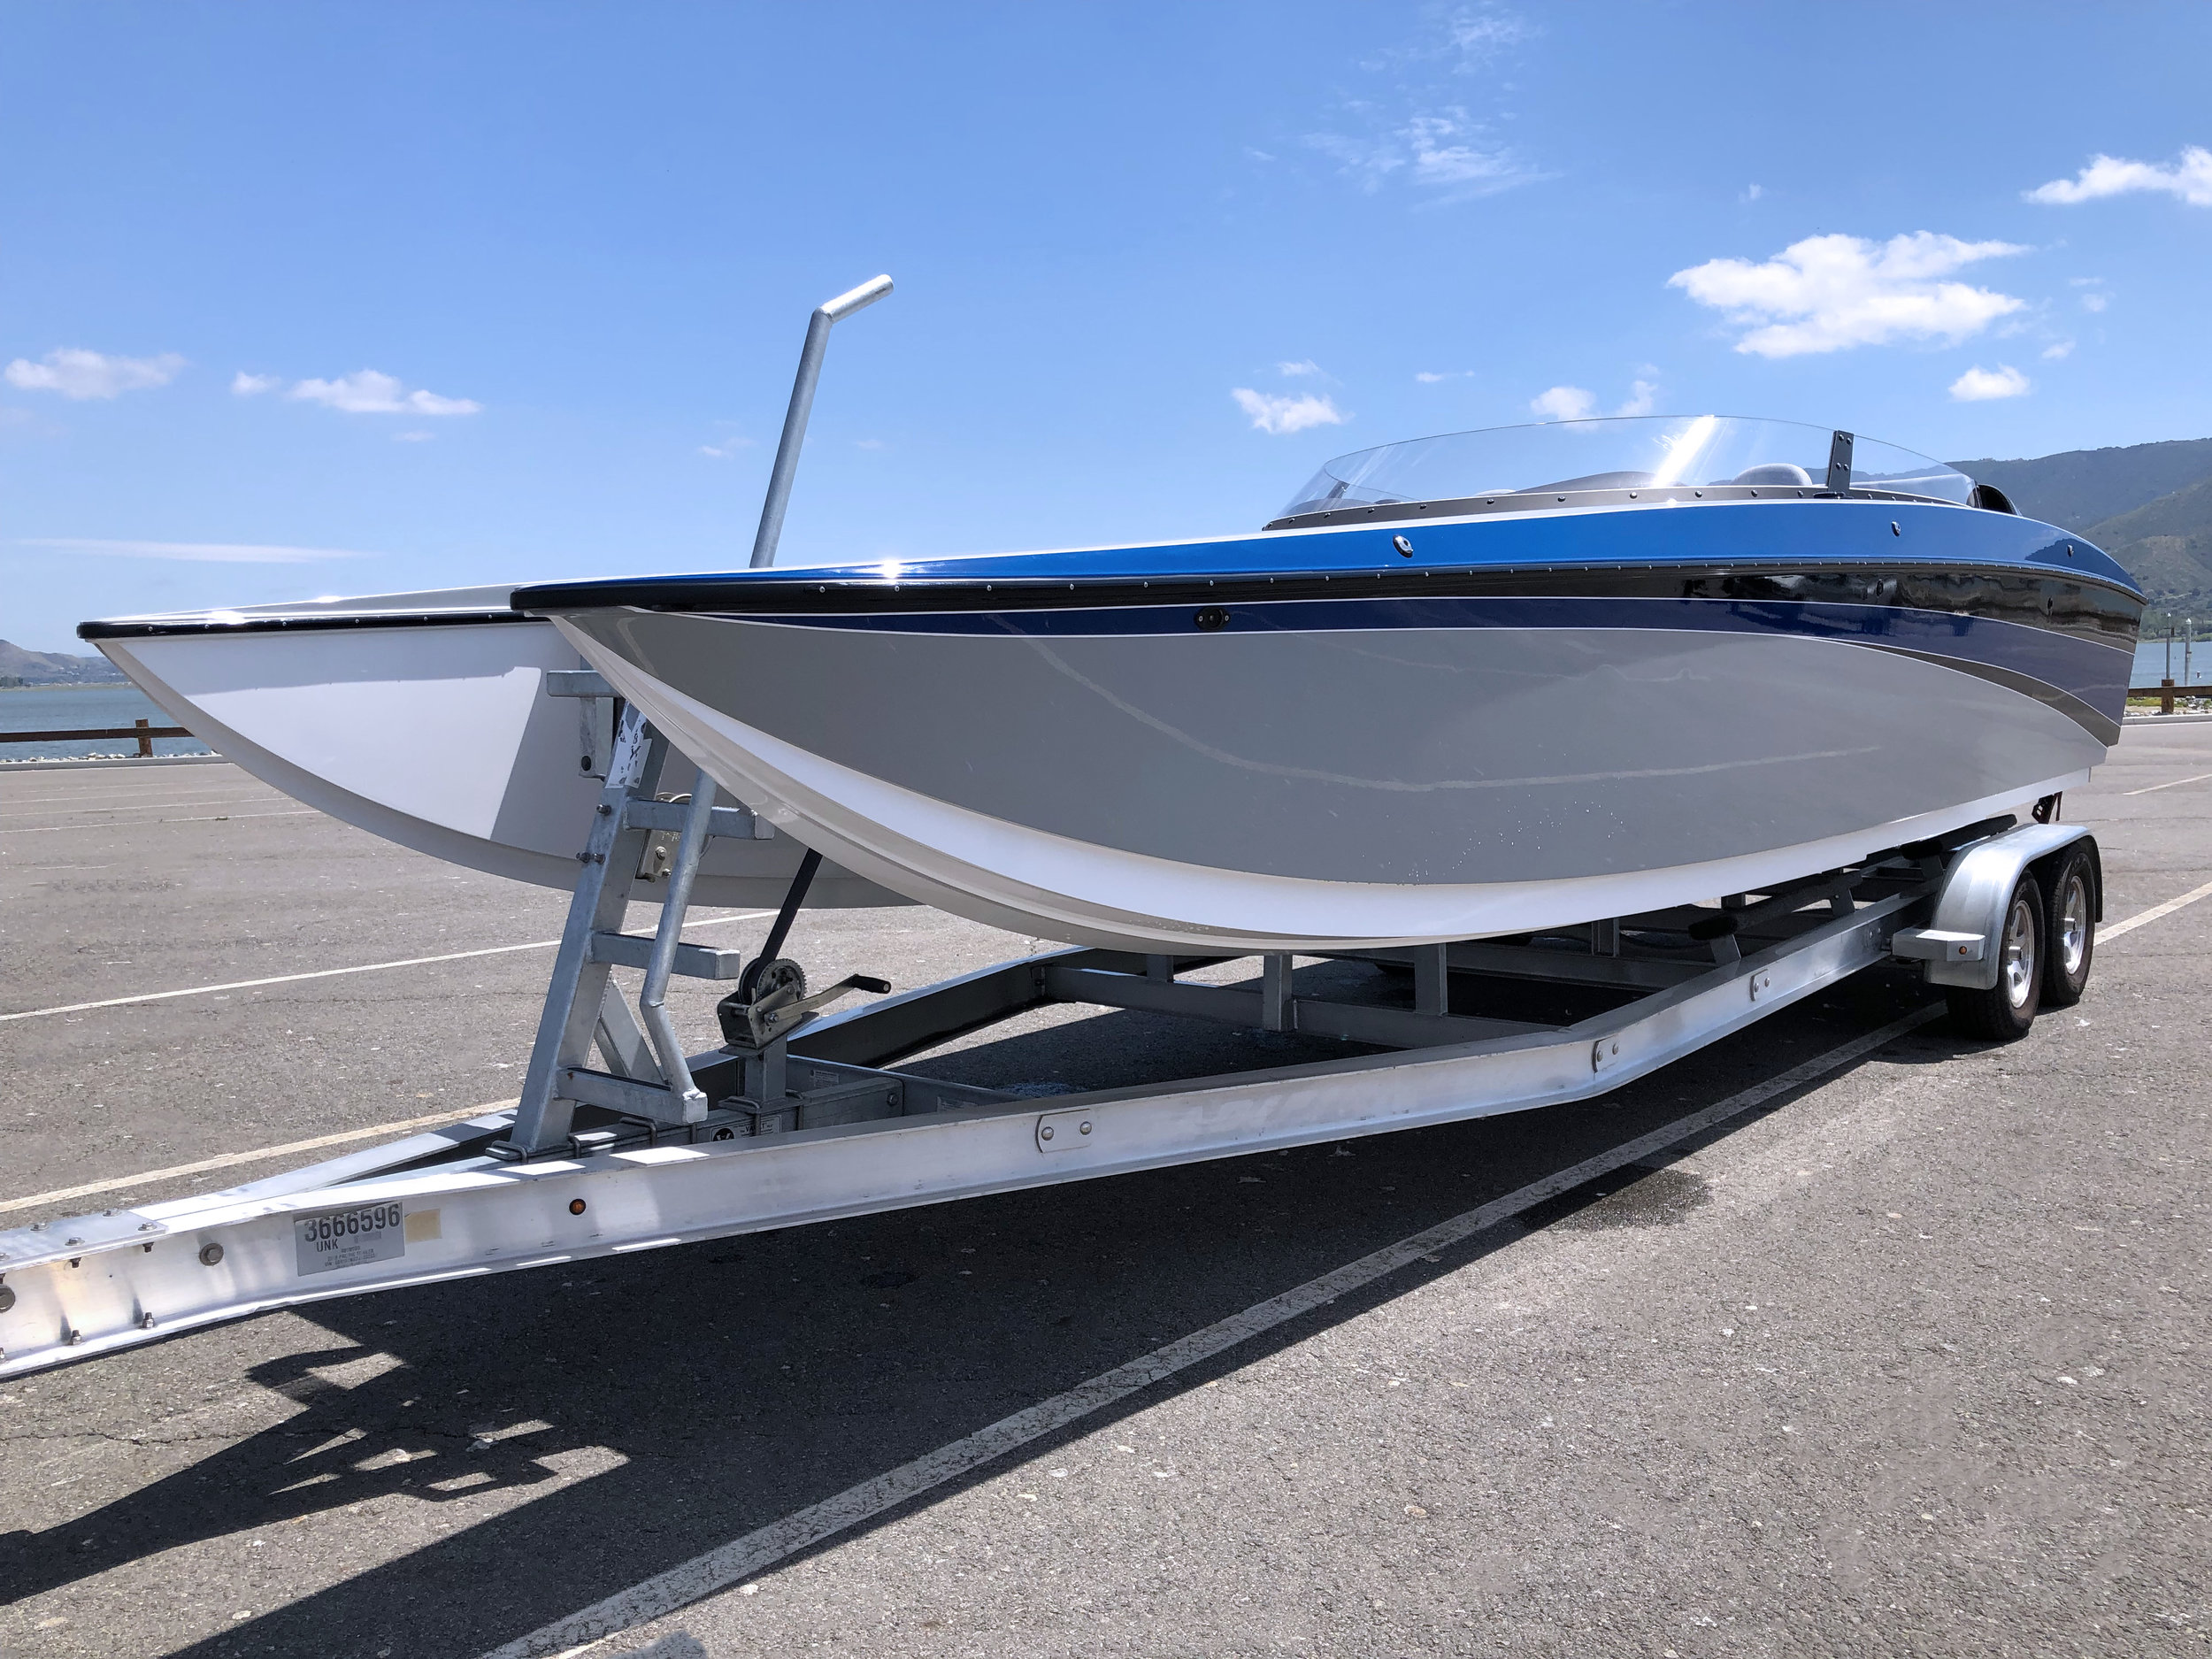 RPM 26 Redline rigging by Lavey Craft - pic 16.jpg